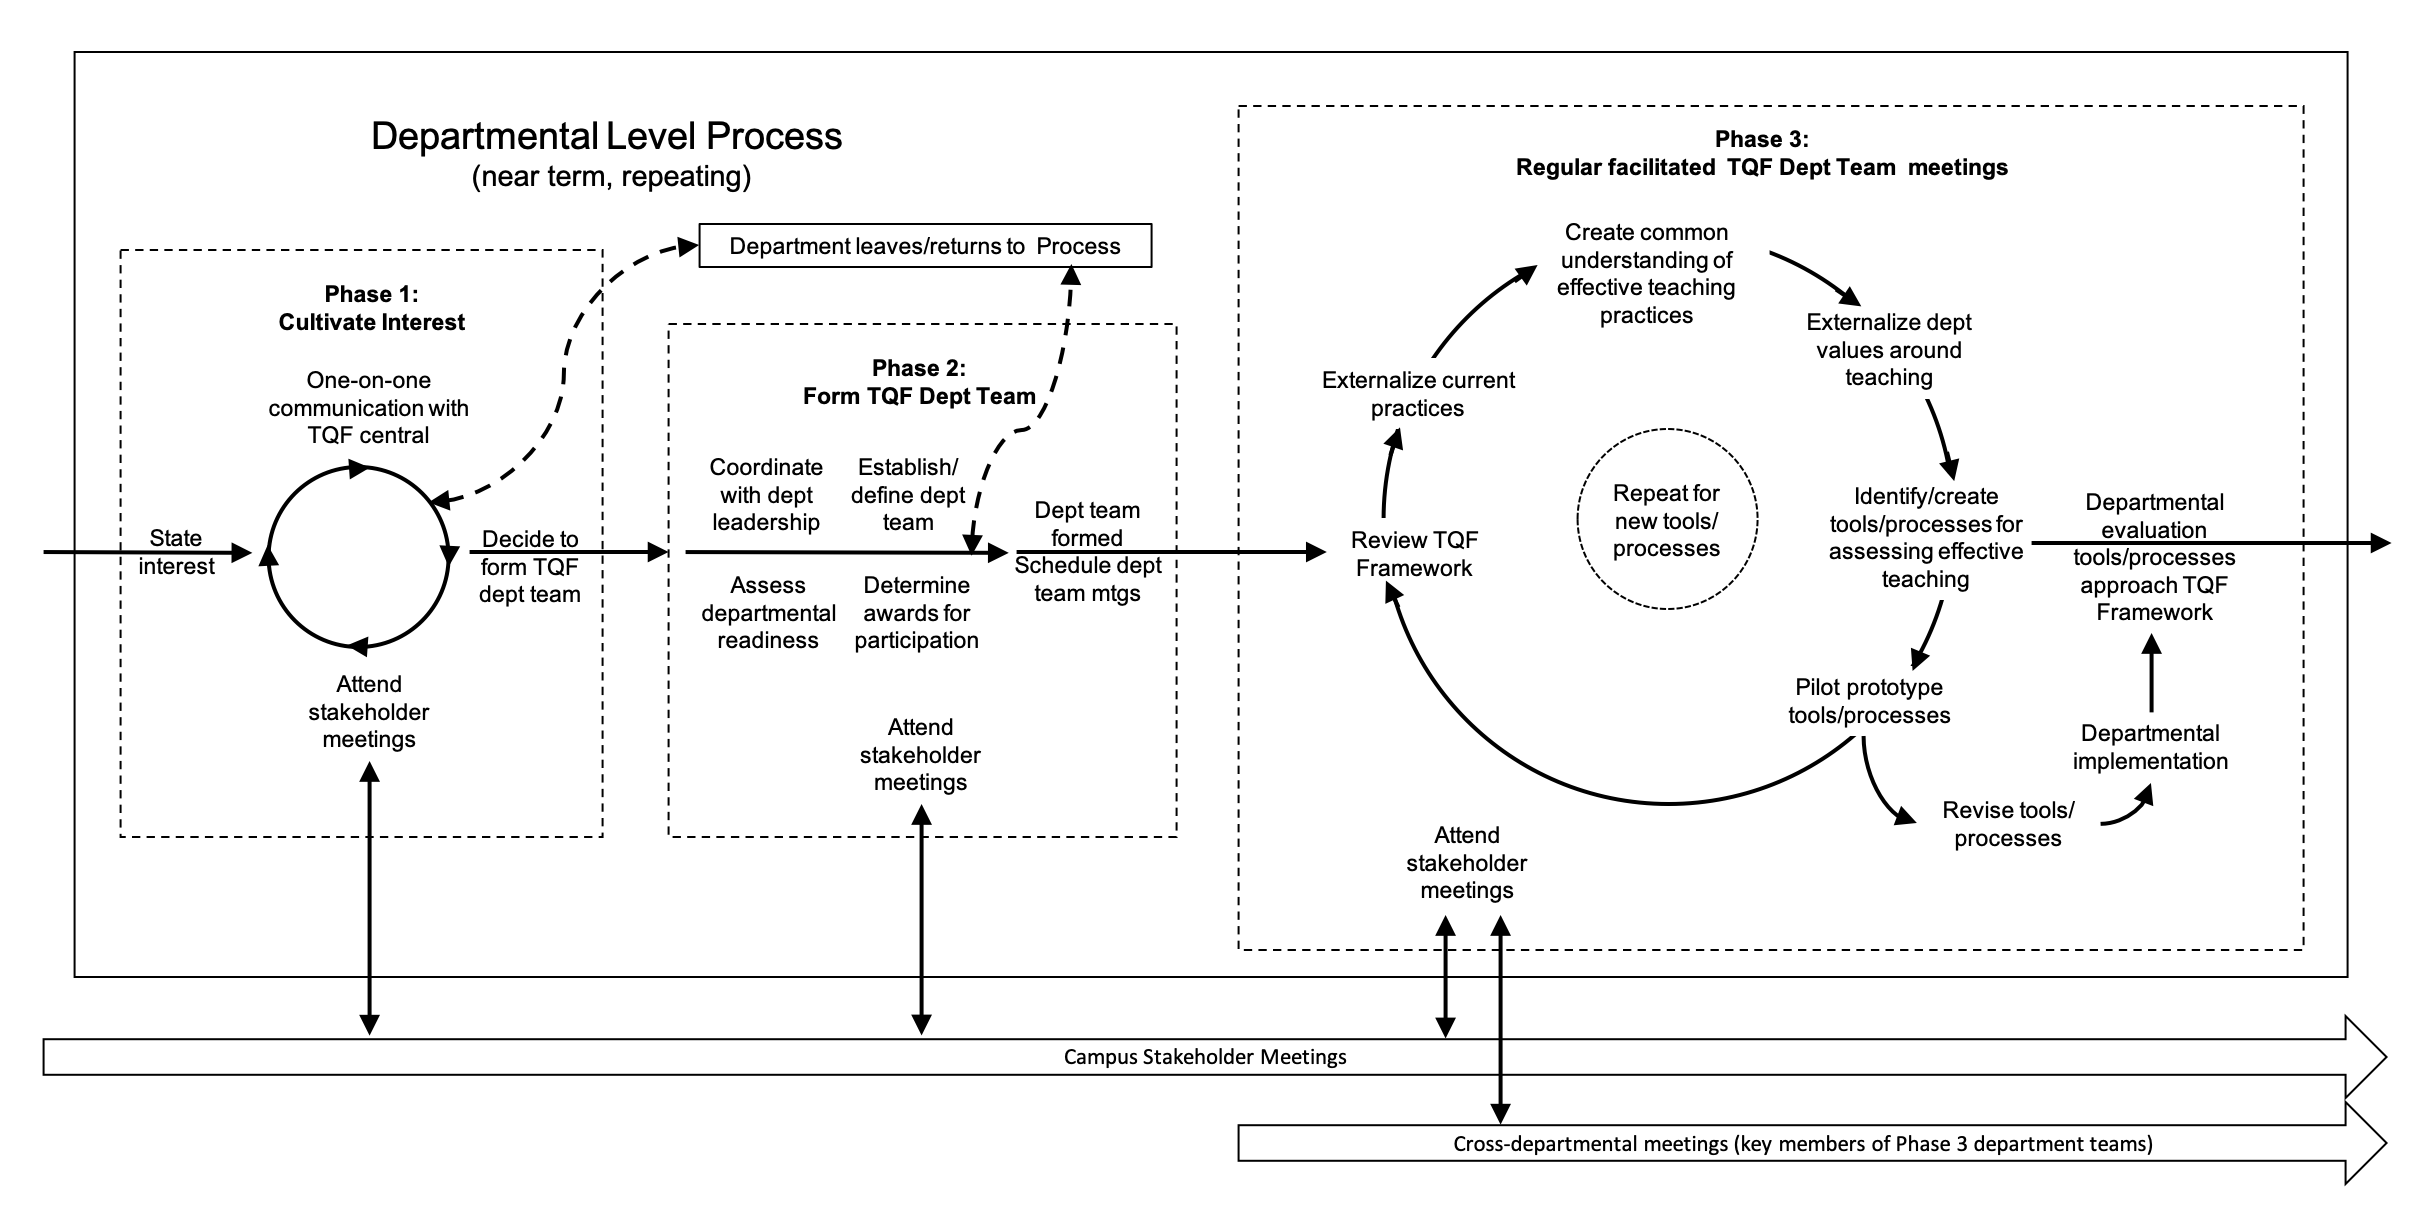 Figure 3. The TQF Three-Phase Departmental Level Change Process. Departments that have expressed interest in engaging with the TQF Initiative begin in Phase 1 (left panel), where interest is cultivated. During Phase 2 (center panel), the TQF central team and departmental leadership coordinate to define timelines, processes, and members for TQF departmental teams. In Phase 3 (right panel), TQF departmental teams engage in regular facilitated meetings to align their teaching evaluation practices with the TQF framework. These facilitated TQF department team meetings are complemented with regular stakeholder and cross-departmental meetings (bottom arrows).